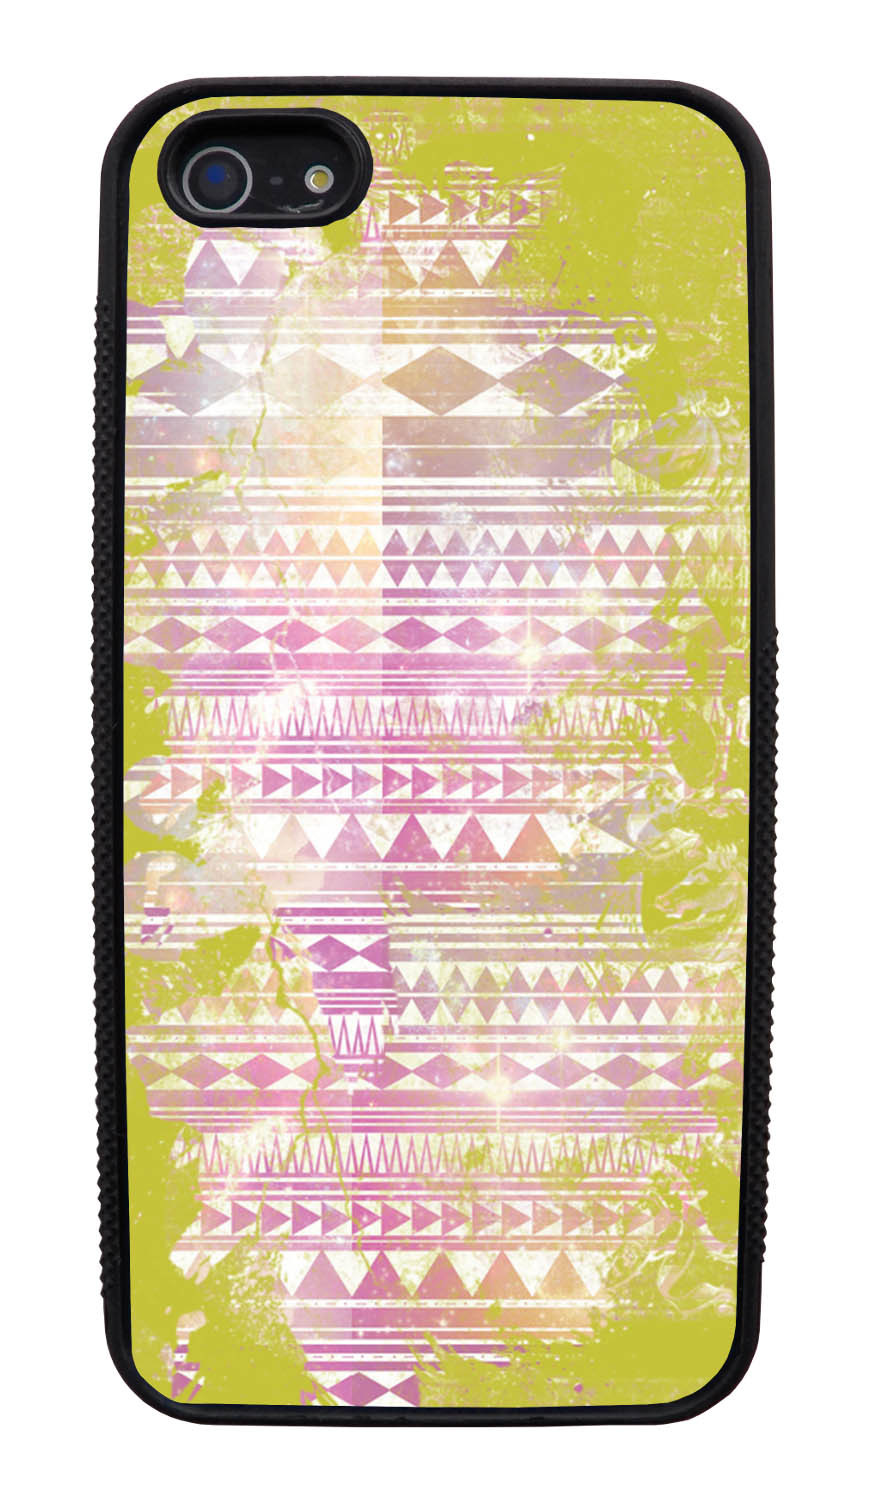 Apple iPhone 5 / 5S Aztec Case - Yellow and White Paint with Pink - Paint Splatter Overlay - Black Slim Rubber Case